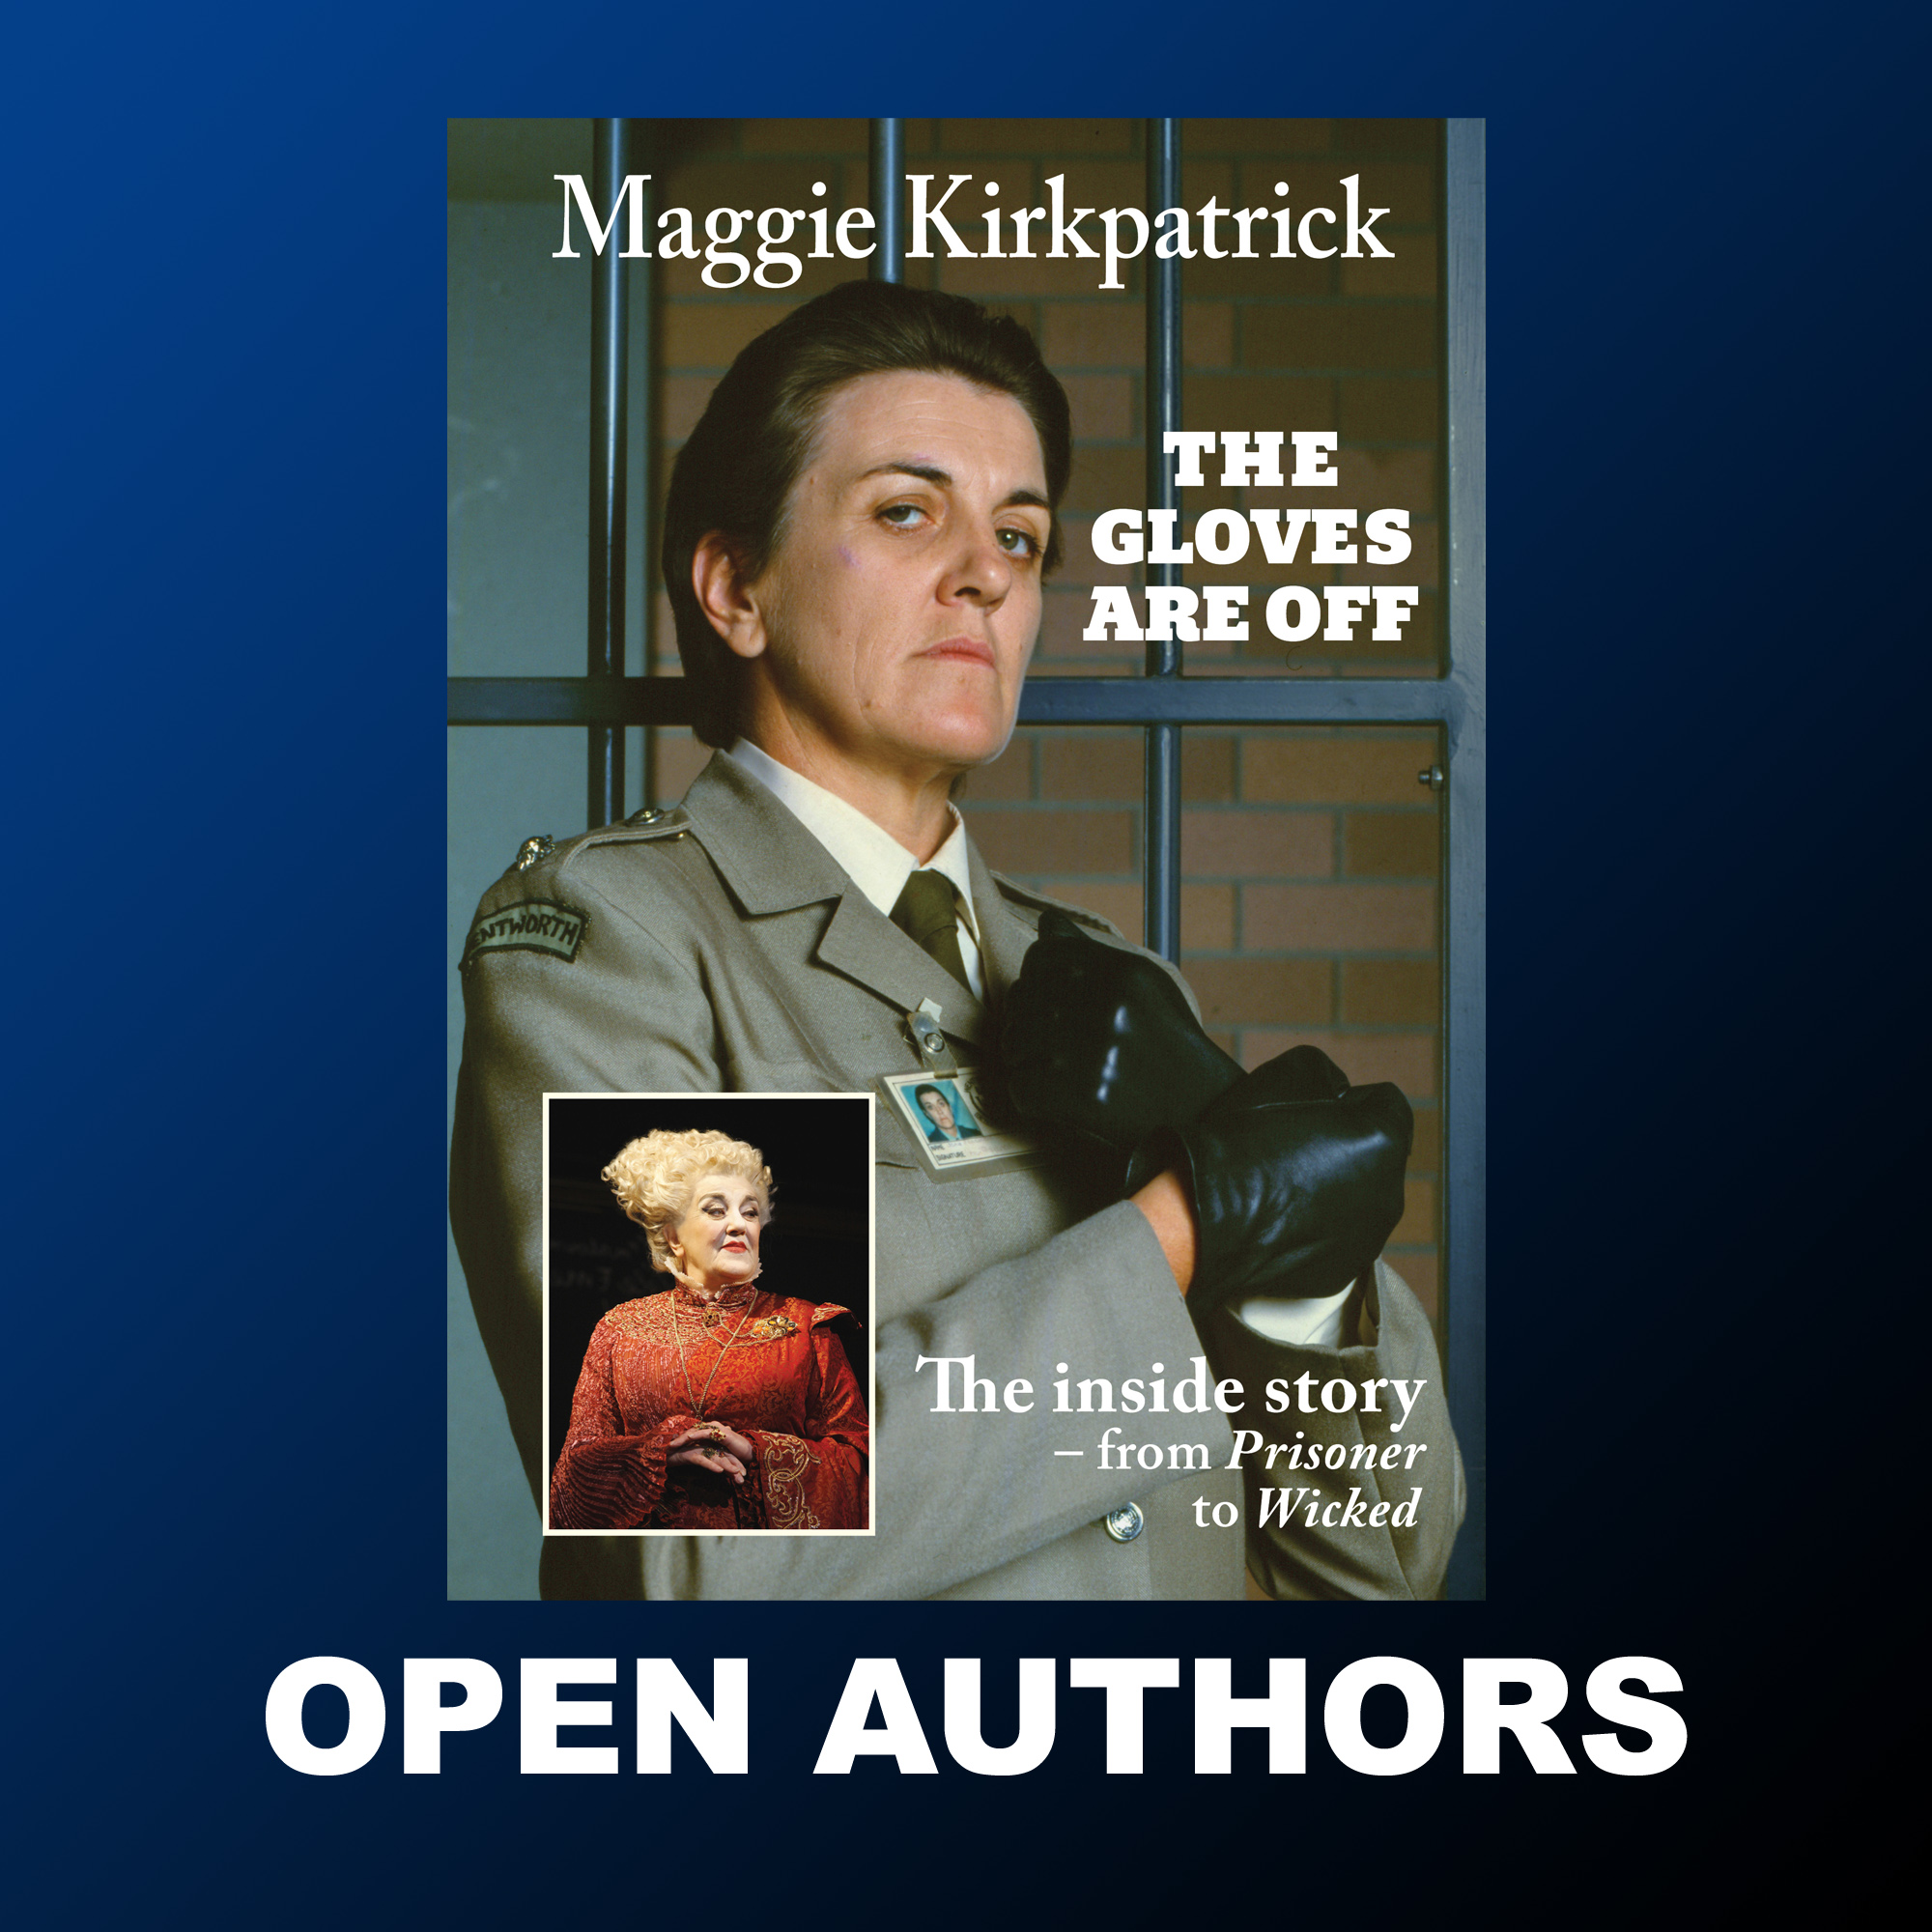 Maggie Kirkpatrick - The Gloves Are Off